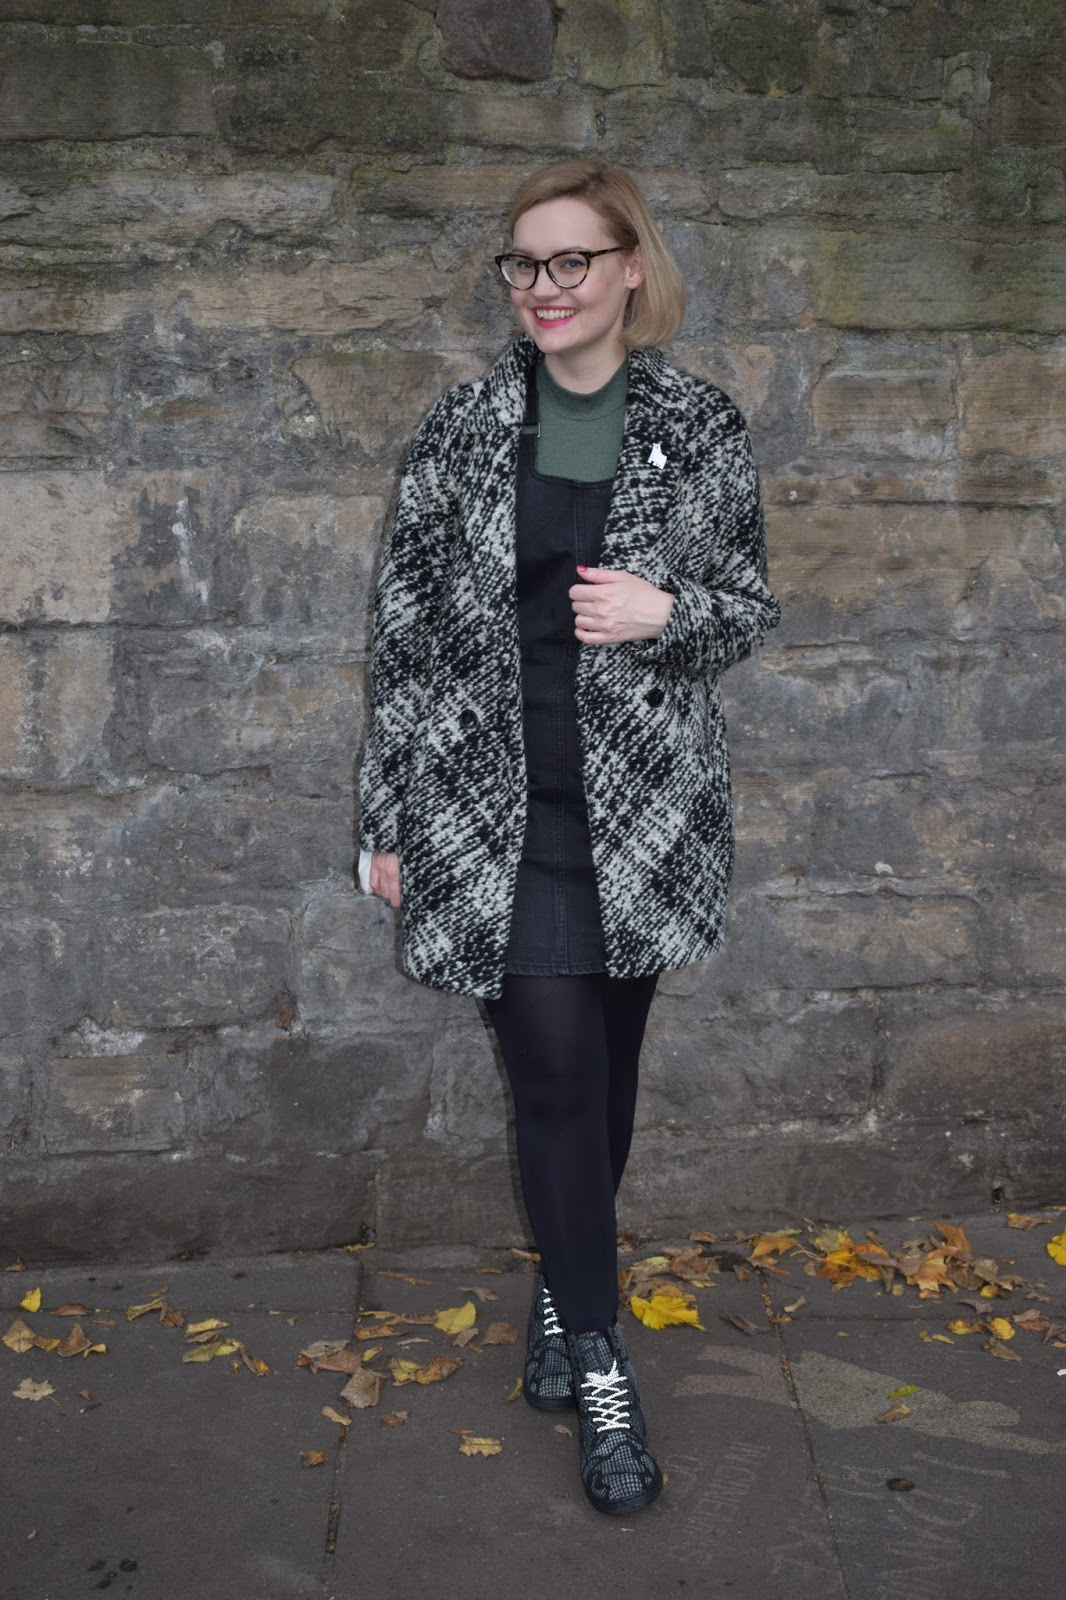 Dr Martens Newton reflective boots, Scottish winter style, Halloween collection, denim pinafore trend, Scottish style blogger, UK fashion trends, dressing for cold weather in Scotland, casual winter style